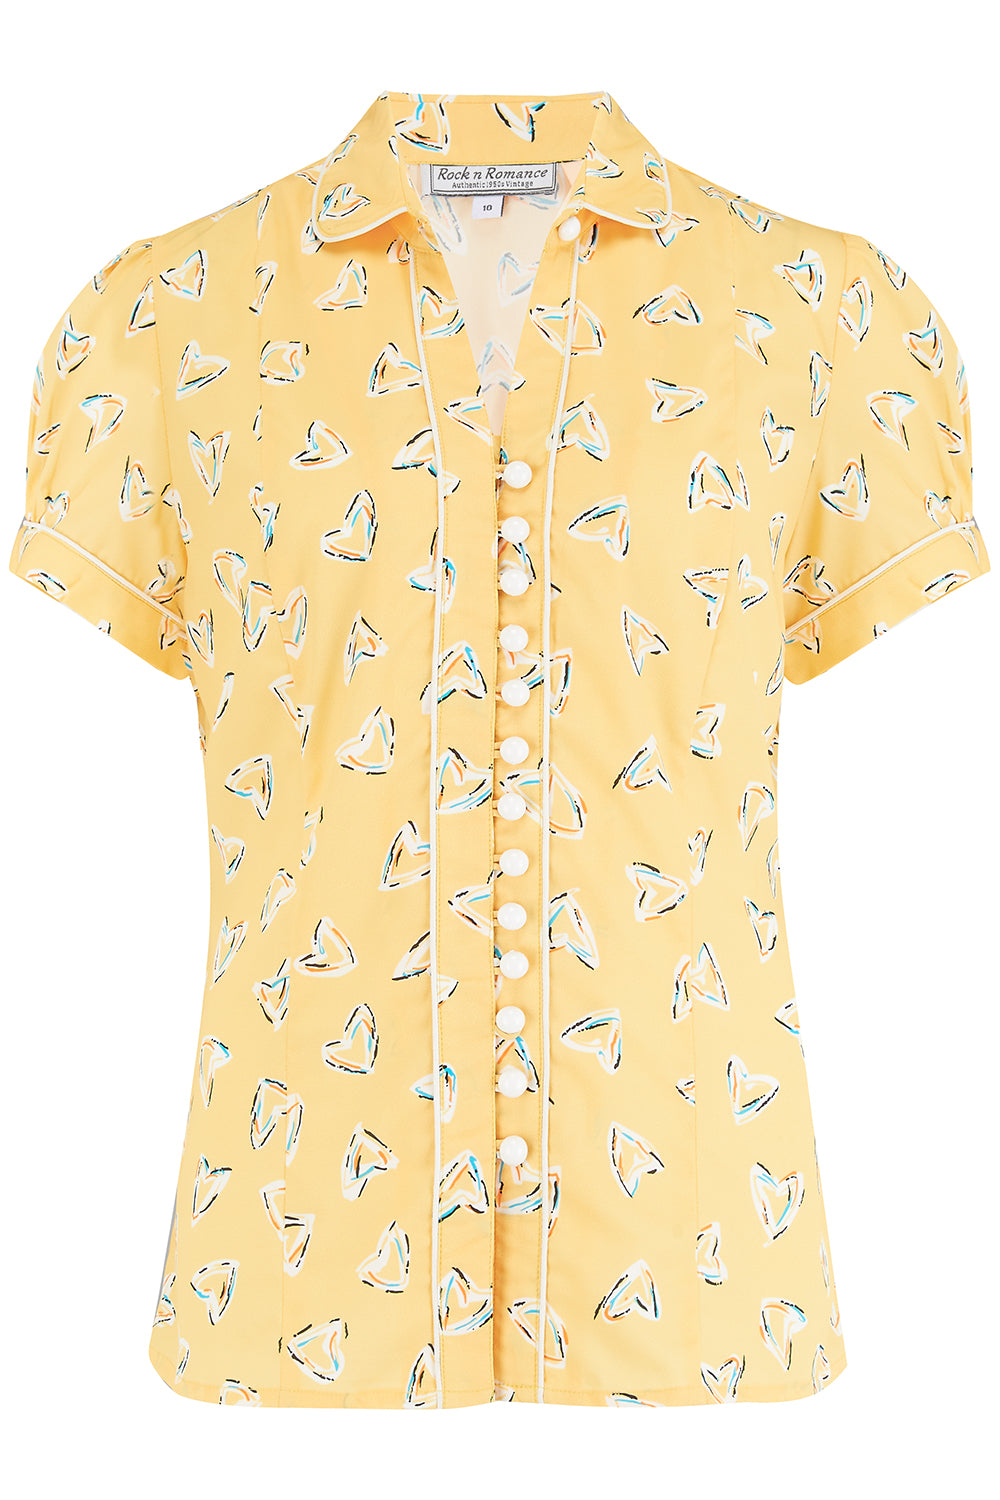 1930s Style Blouses, Shirts, Tops | Vintage Blouses Sample Sale Margot Blouse in Yellow Abstract Heart Print Perfect 1950s Style £19.00 AT vintagedancer.com